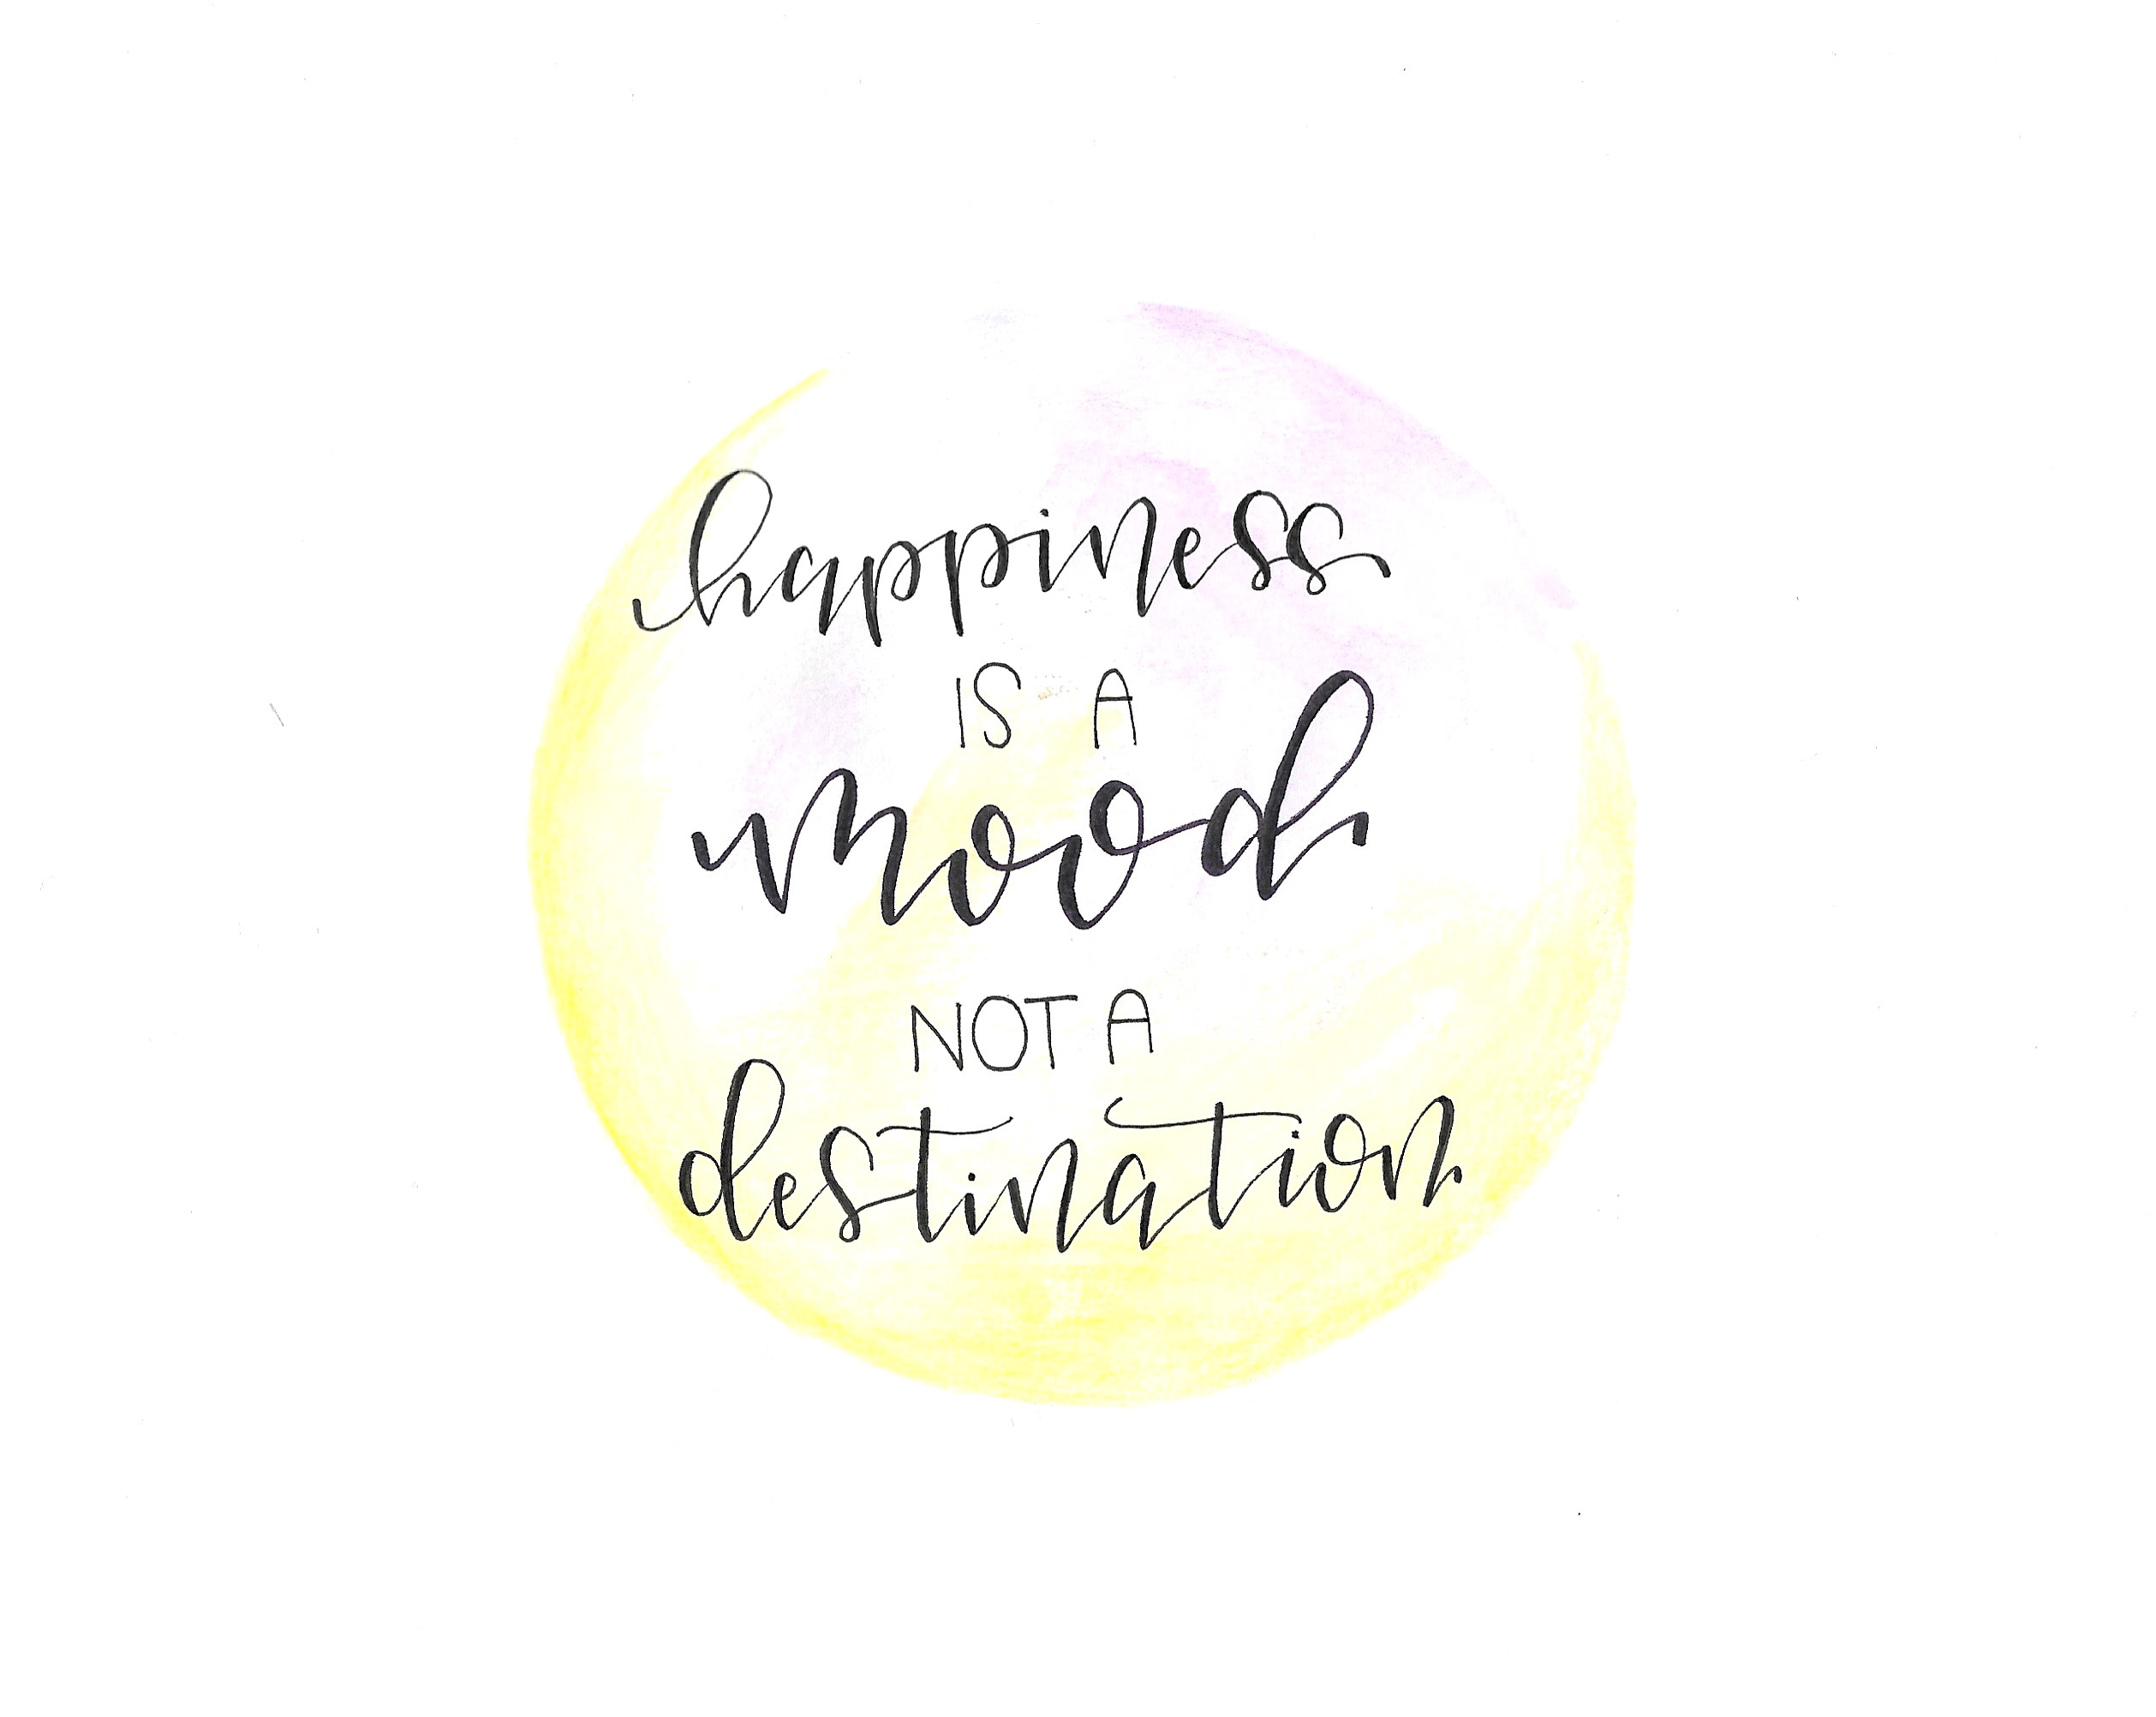 Happiness is a mood - not a destination! - Tanja Rickerts Blog